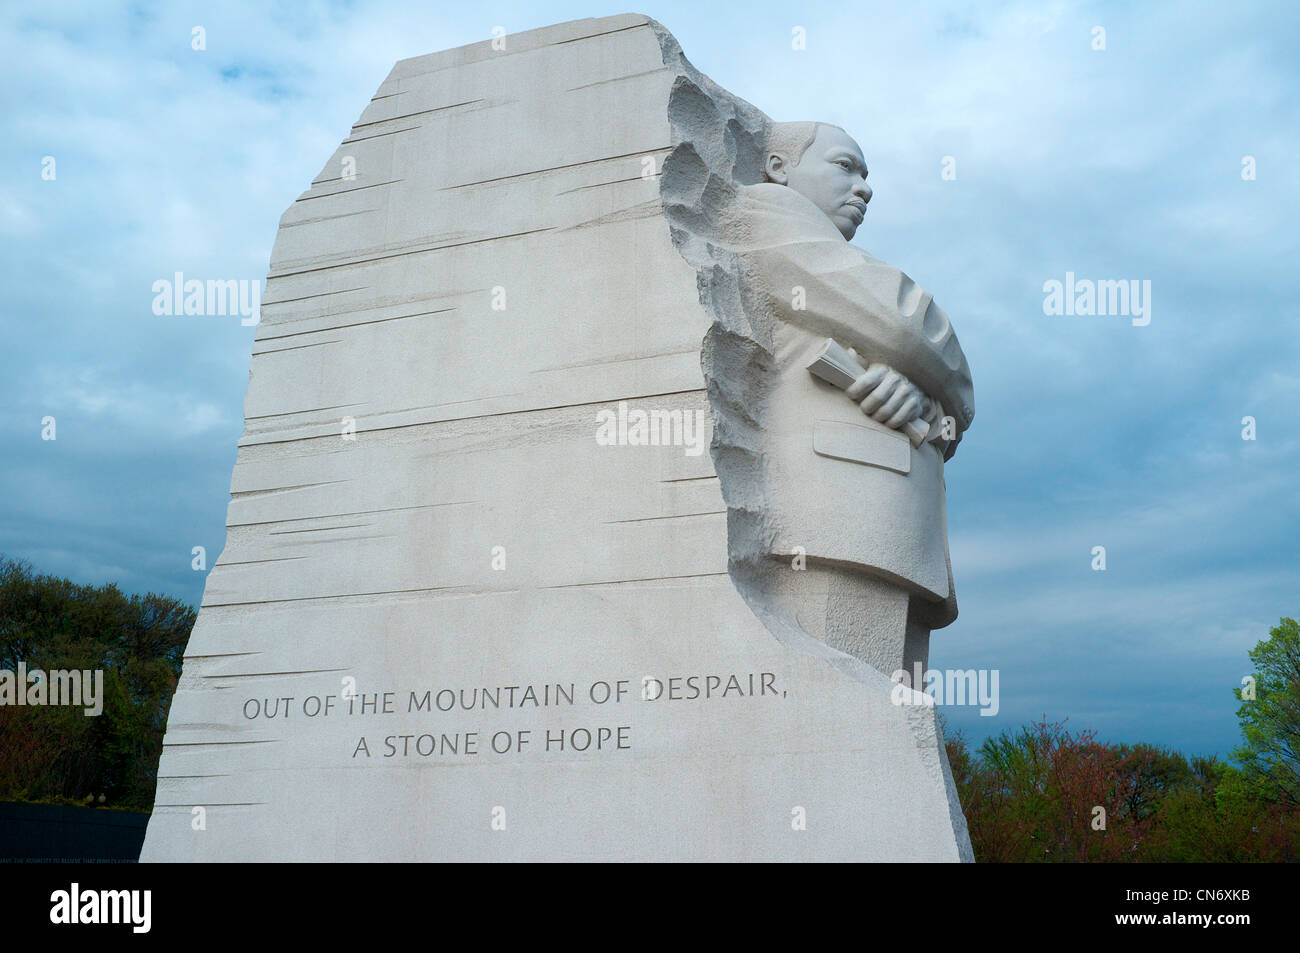 Sculpture of Martin Luther King Jr in MLK Memorial in Washington, DC Stock Photo